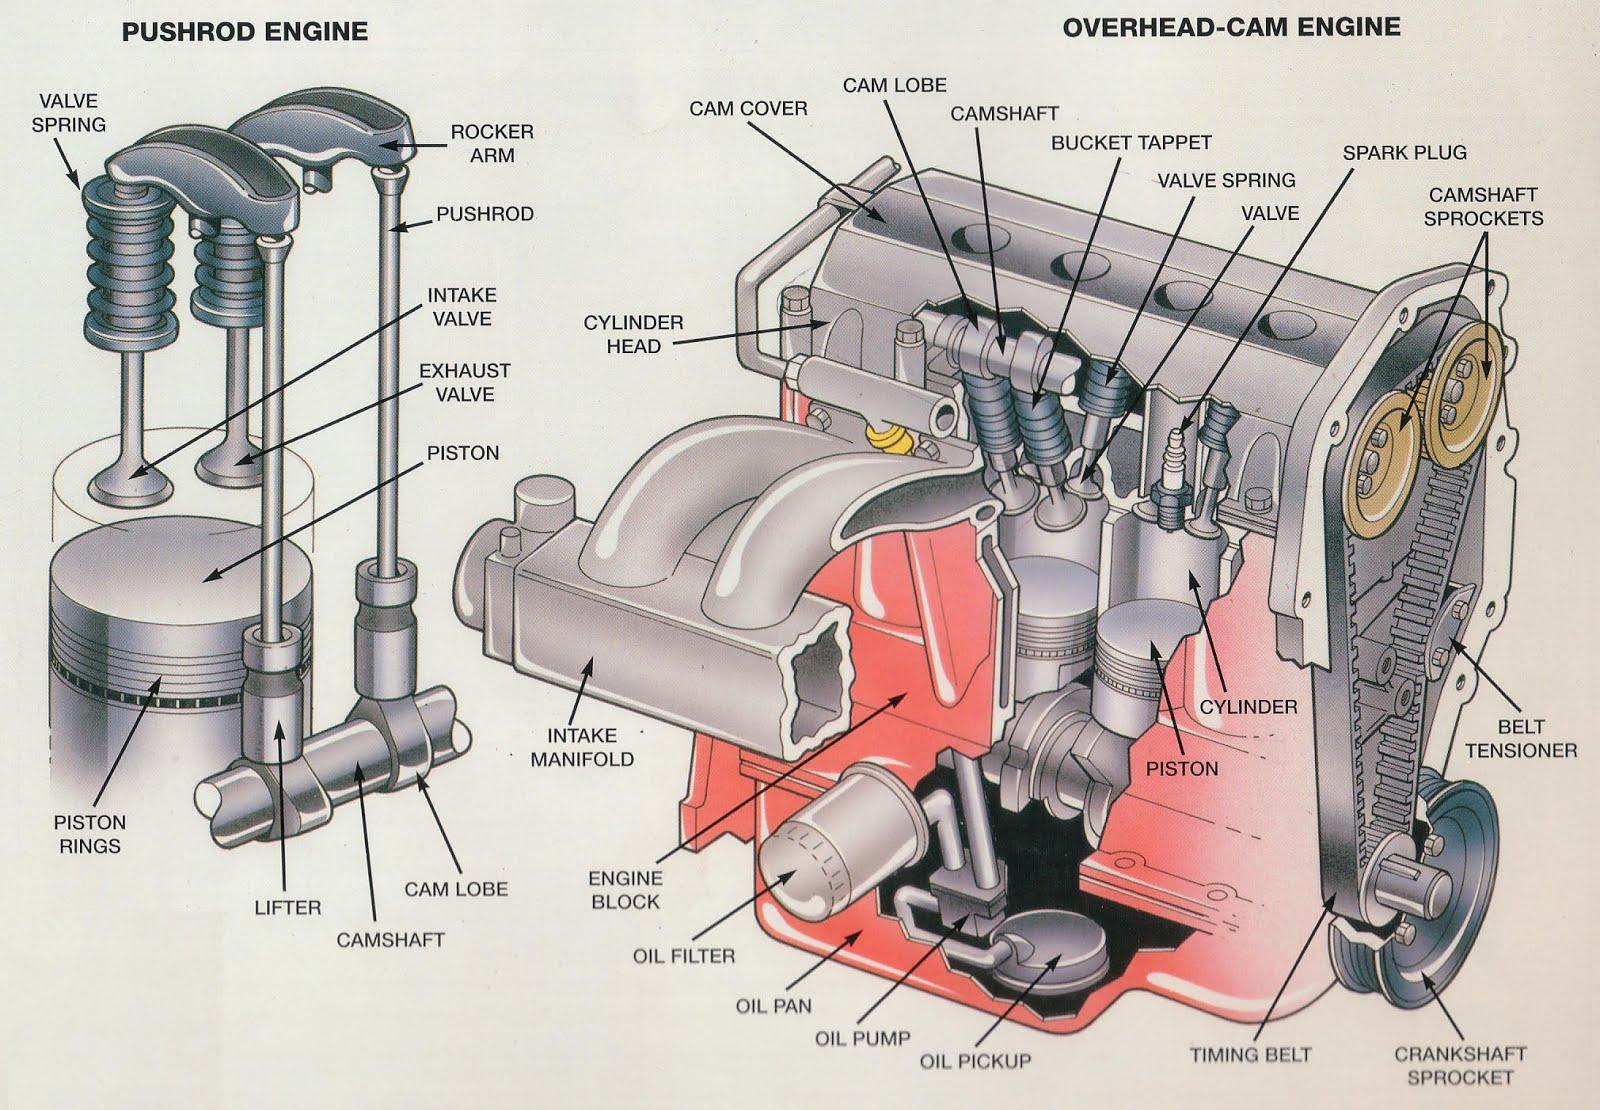 overhead cam engine diagram single overhead cam engine diagram